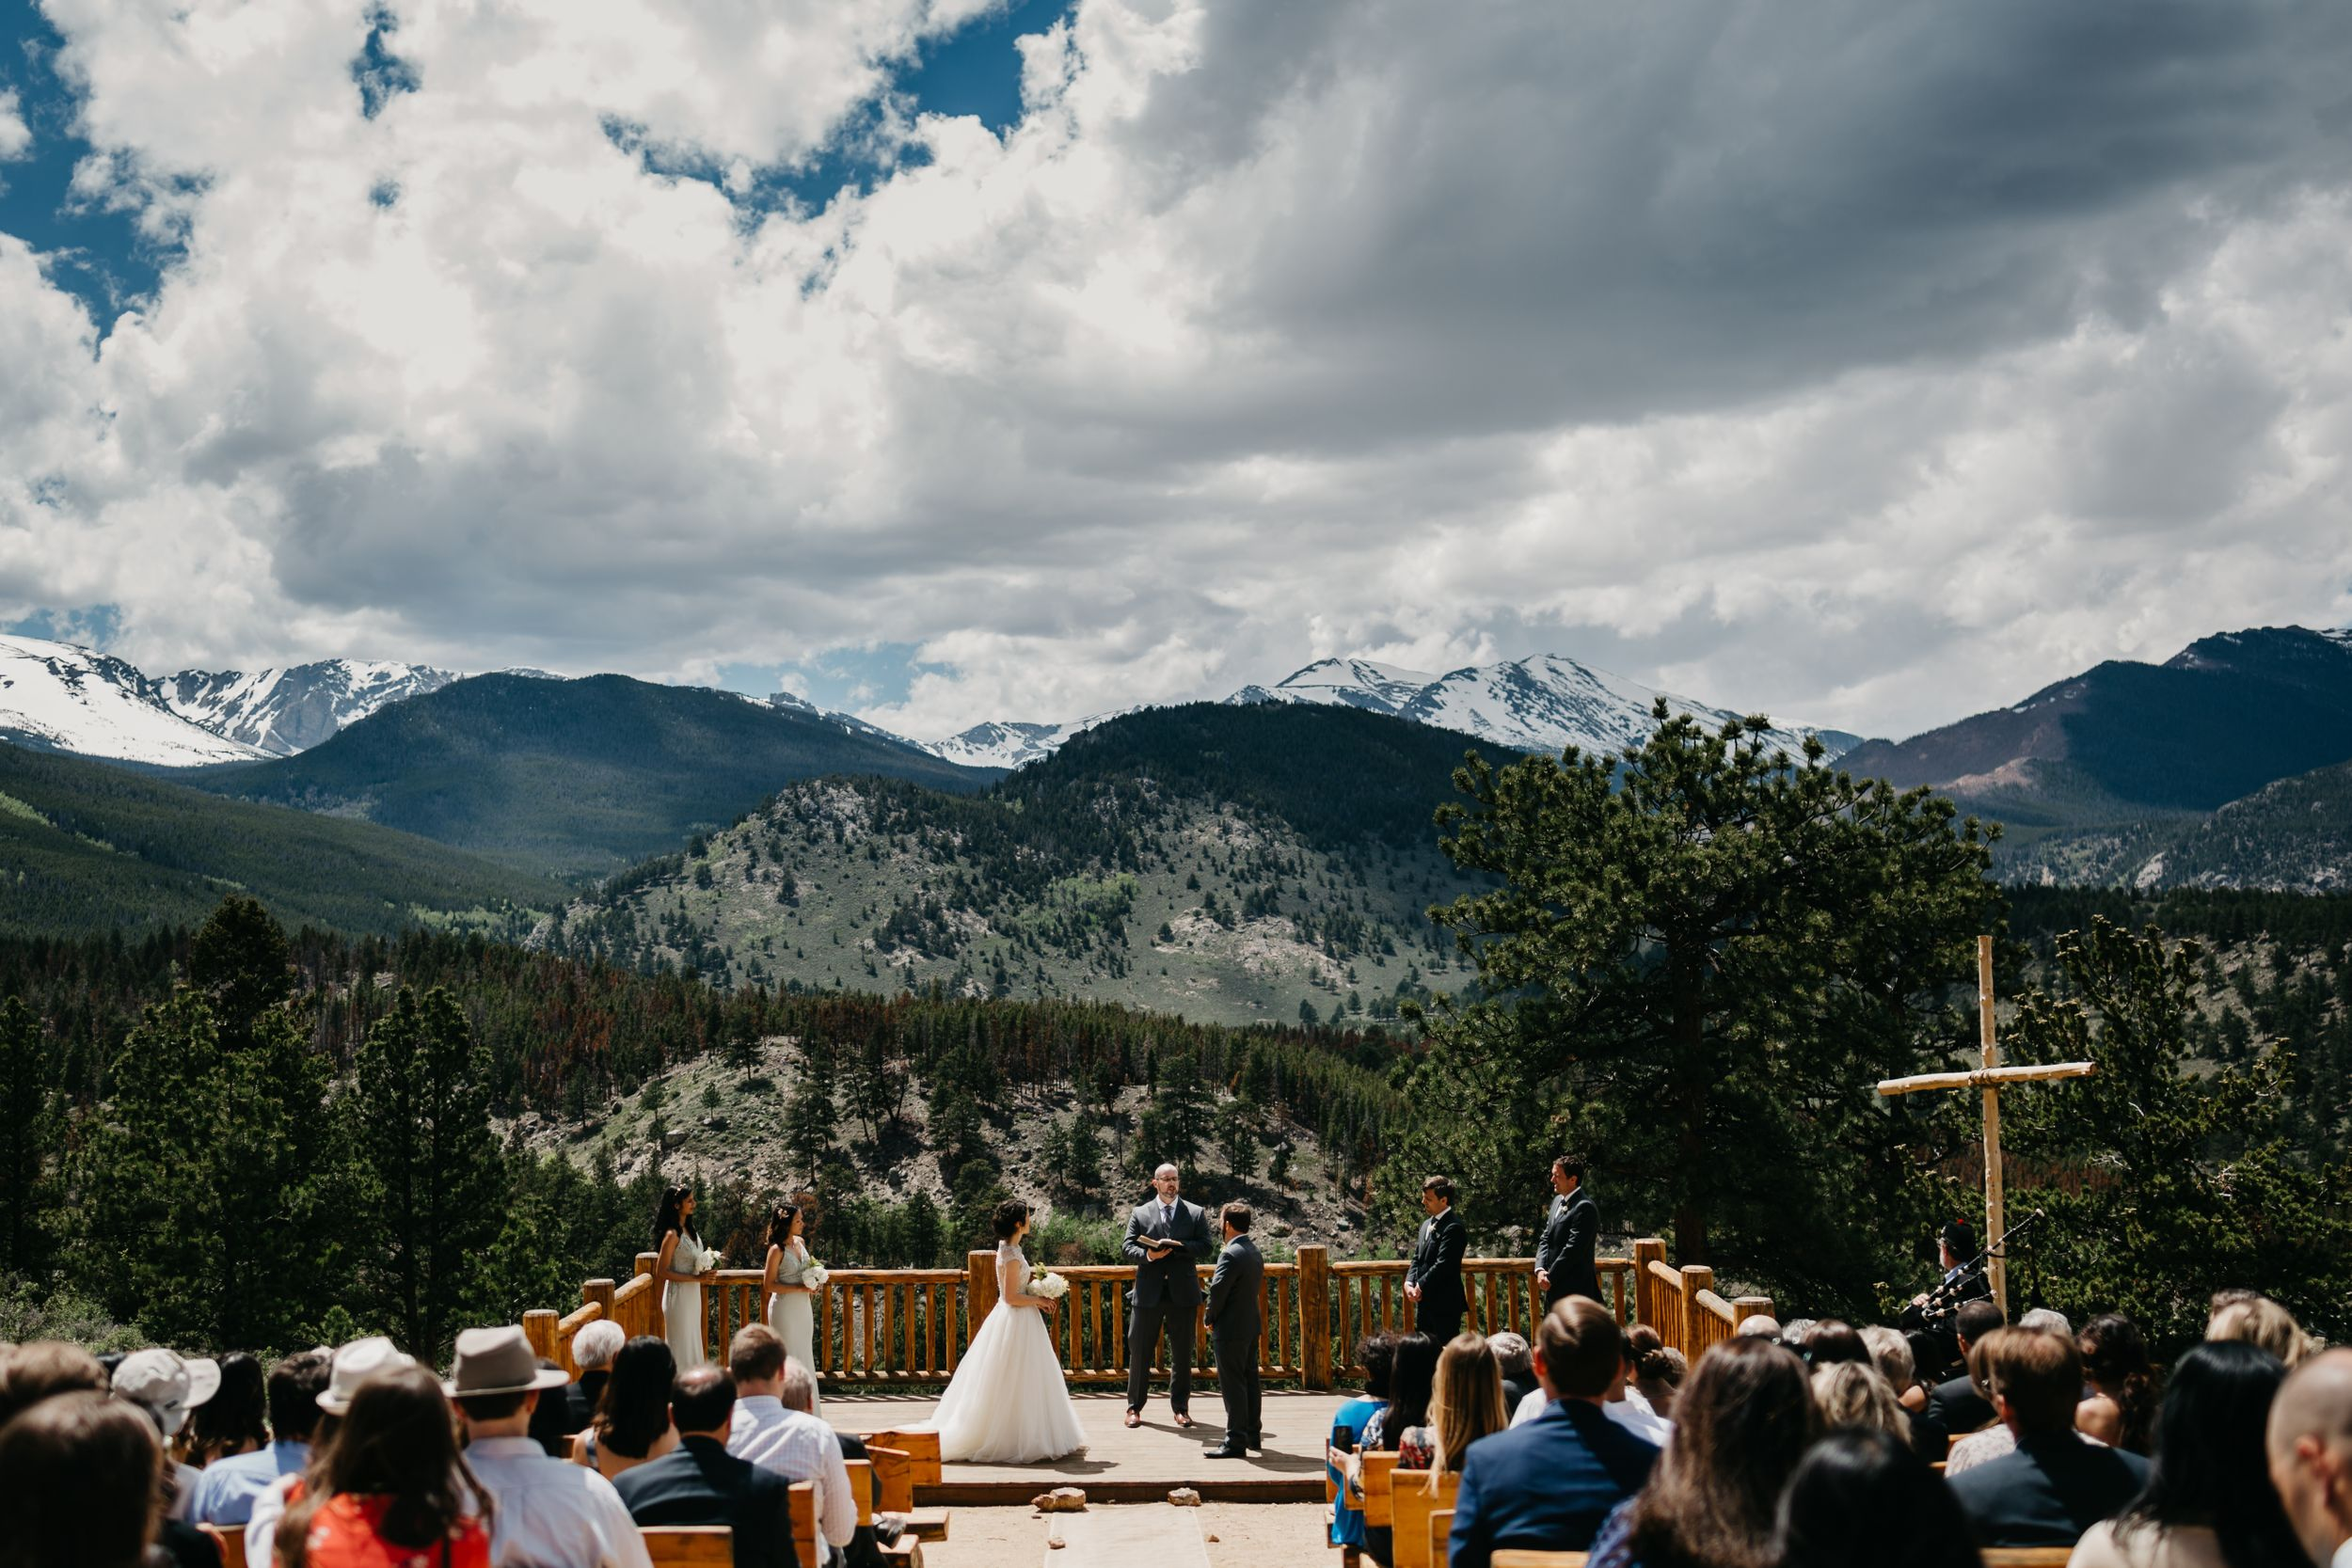 ymca, Rocky Mountain,  ceremony, photography, colorado, estes park, forest wedding, classy, timeless